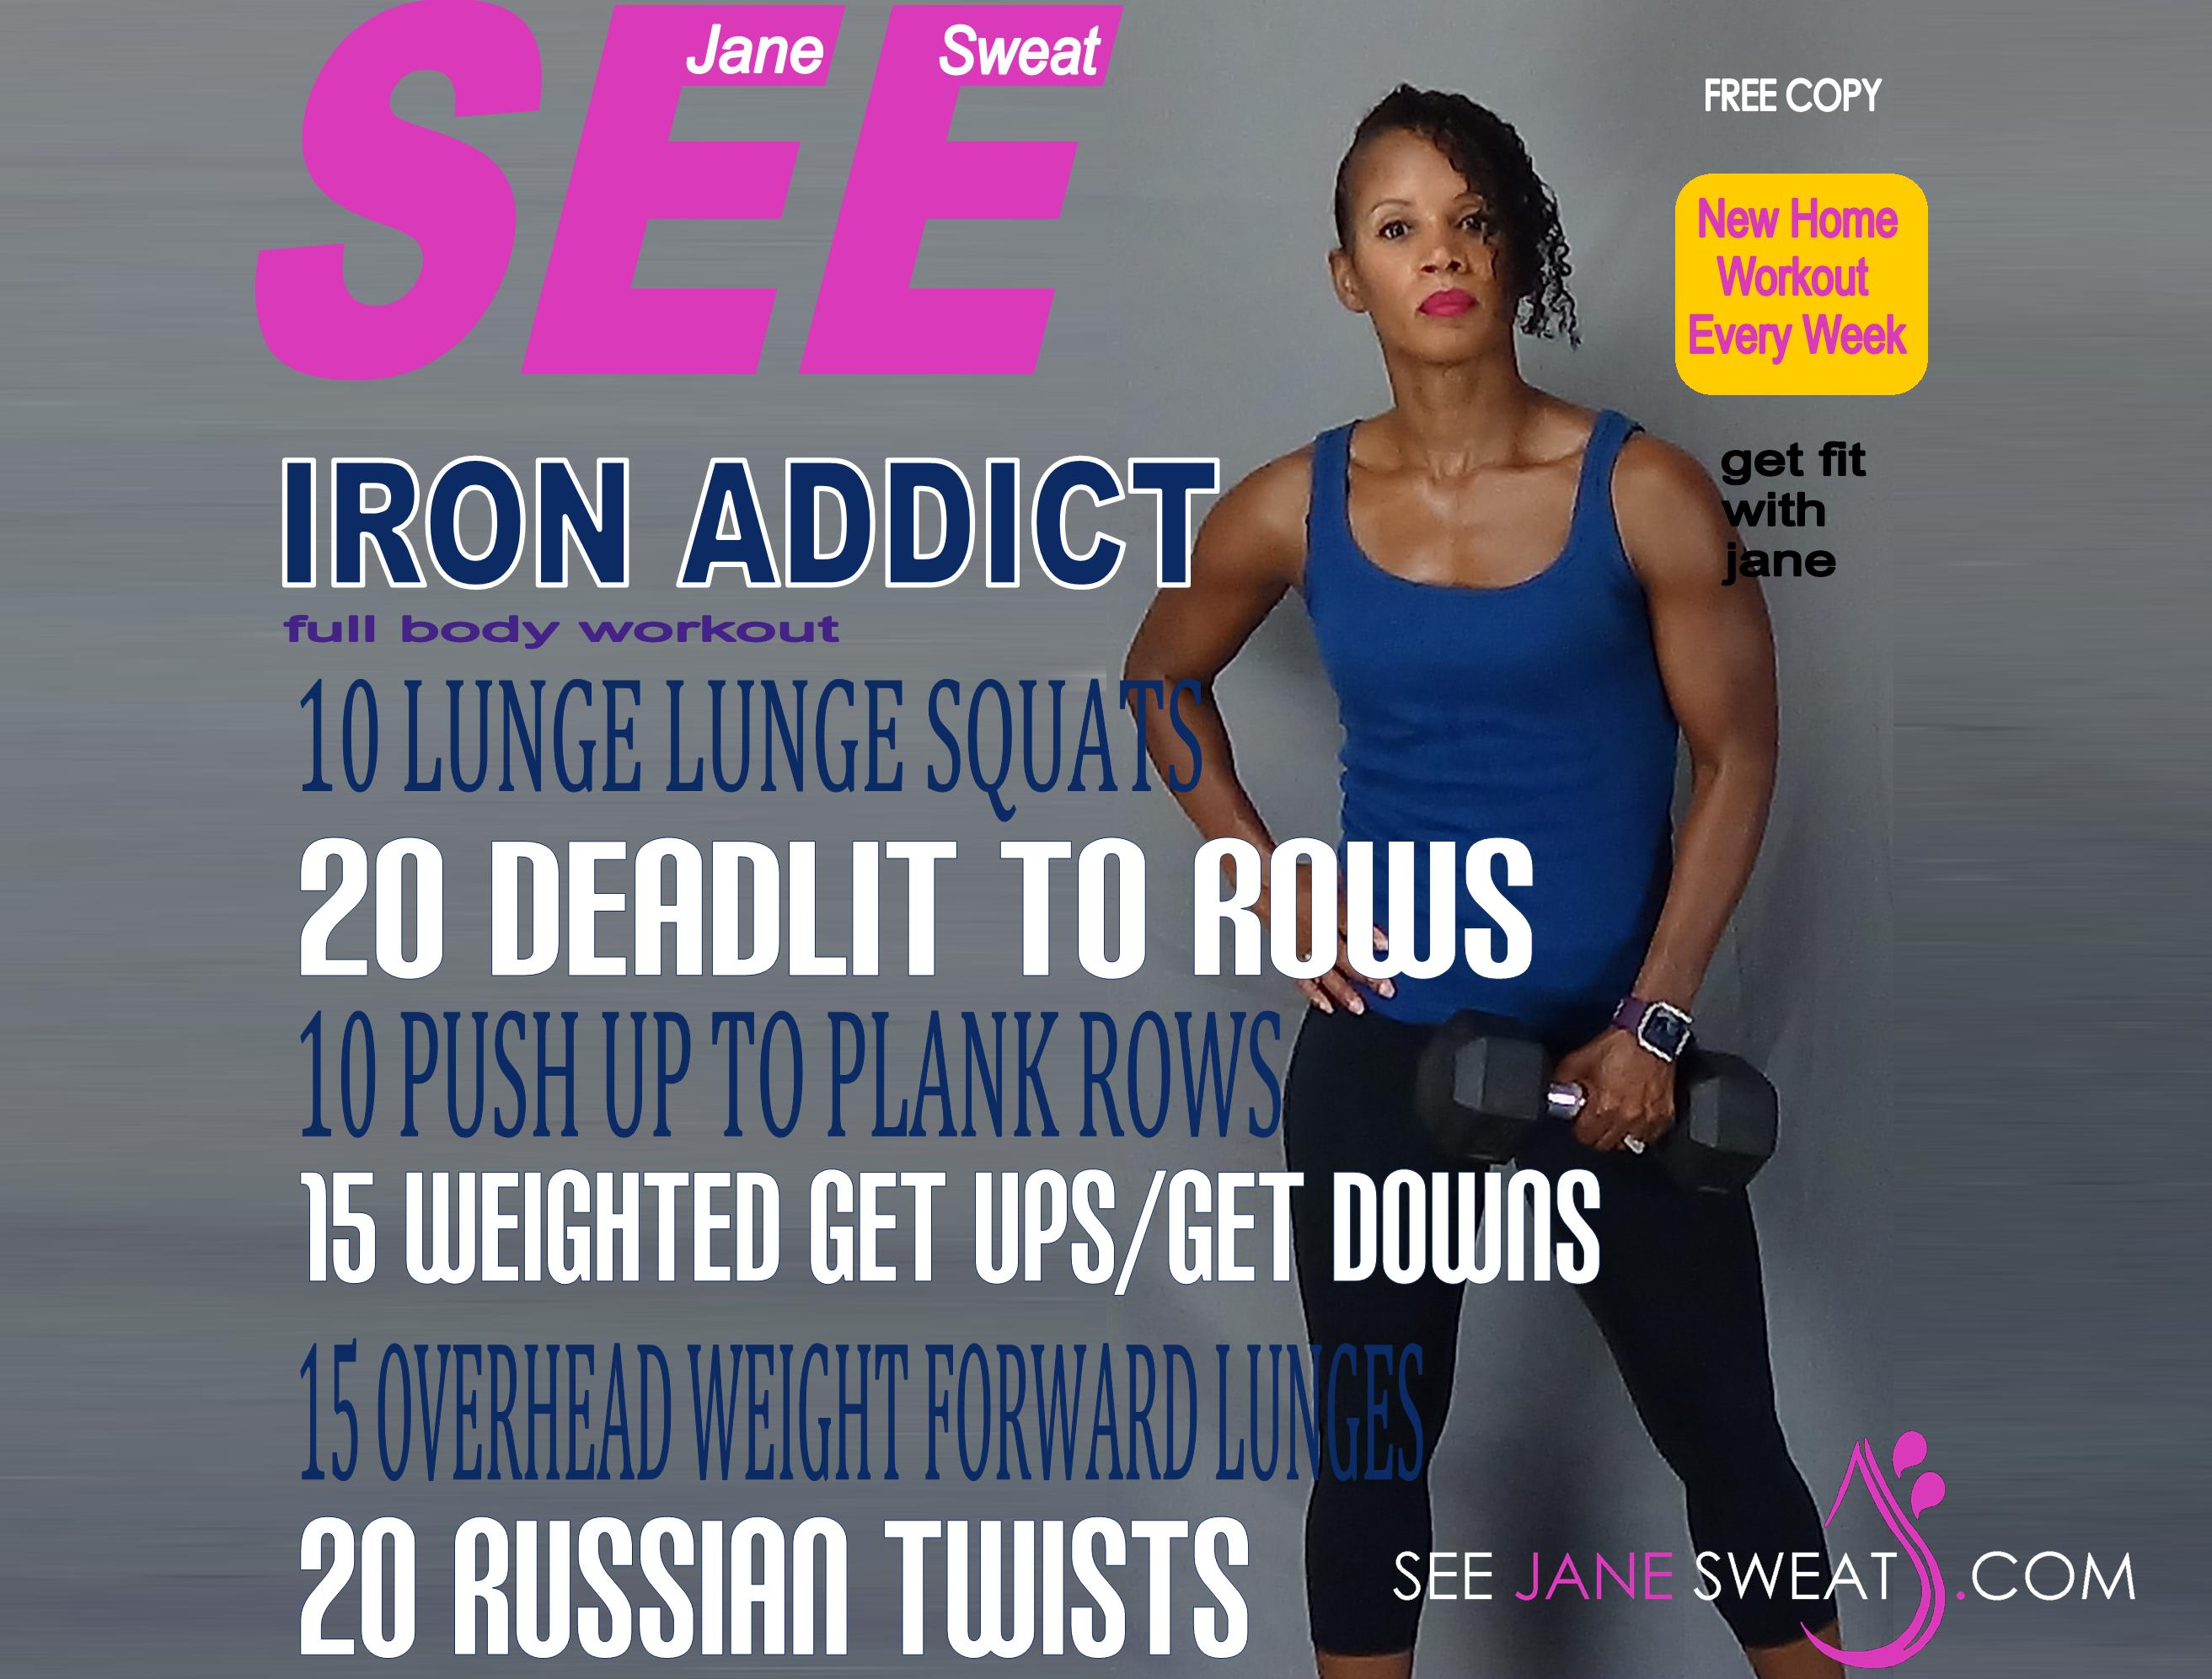 Iron Addict Full Body Workout